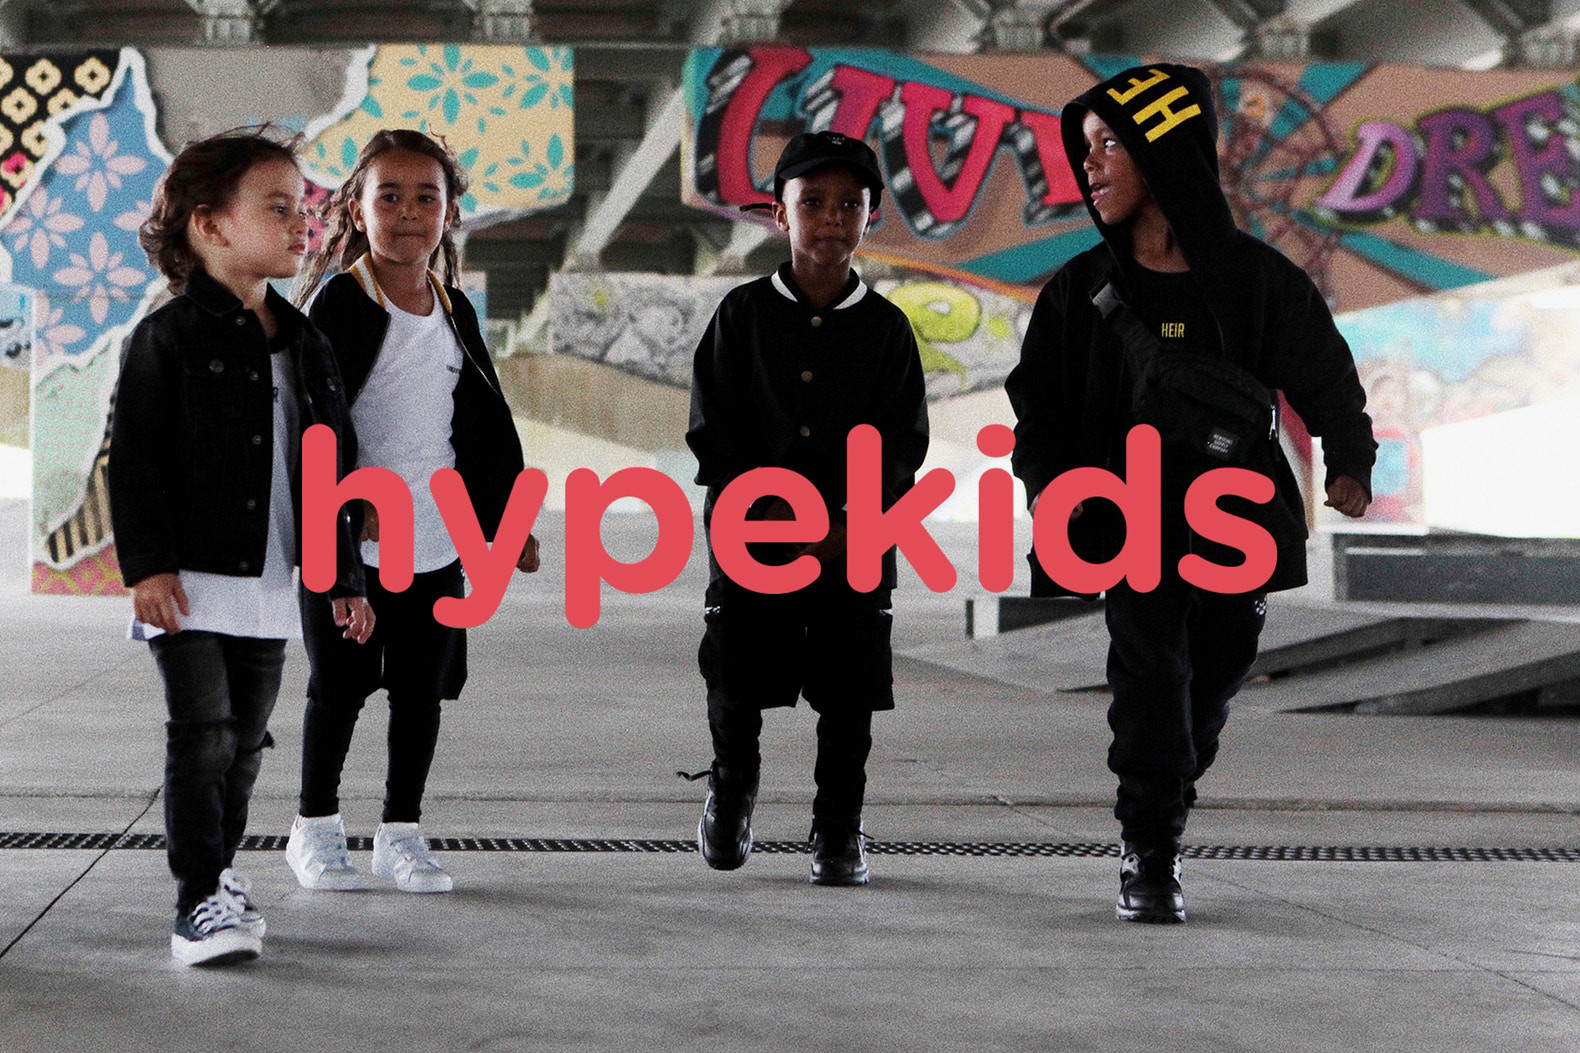 hypekids: Fashion for the Little Ones